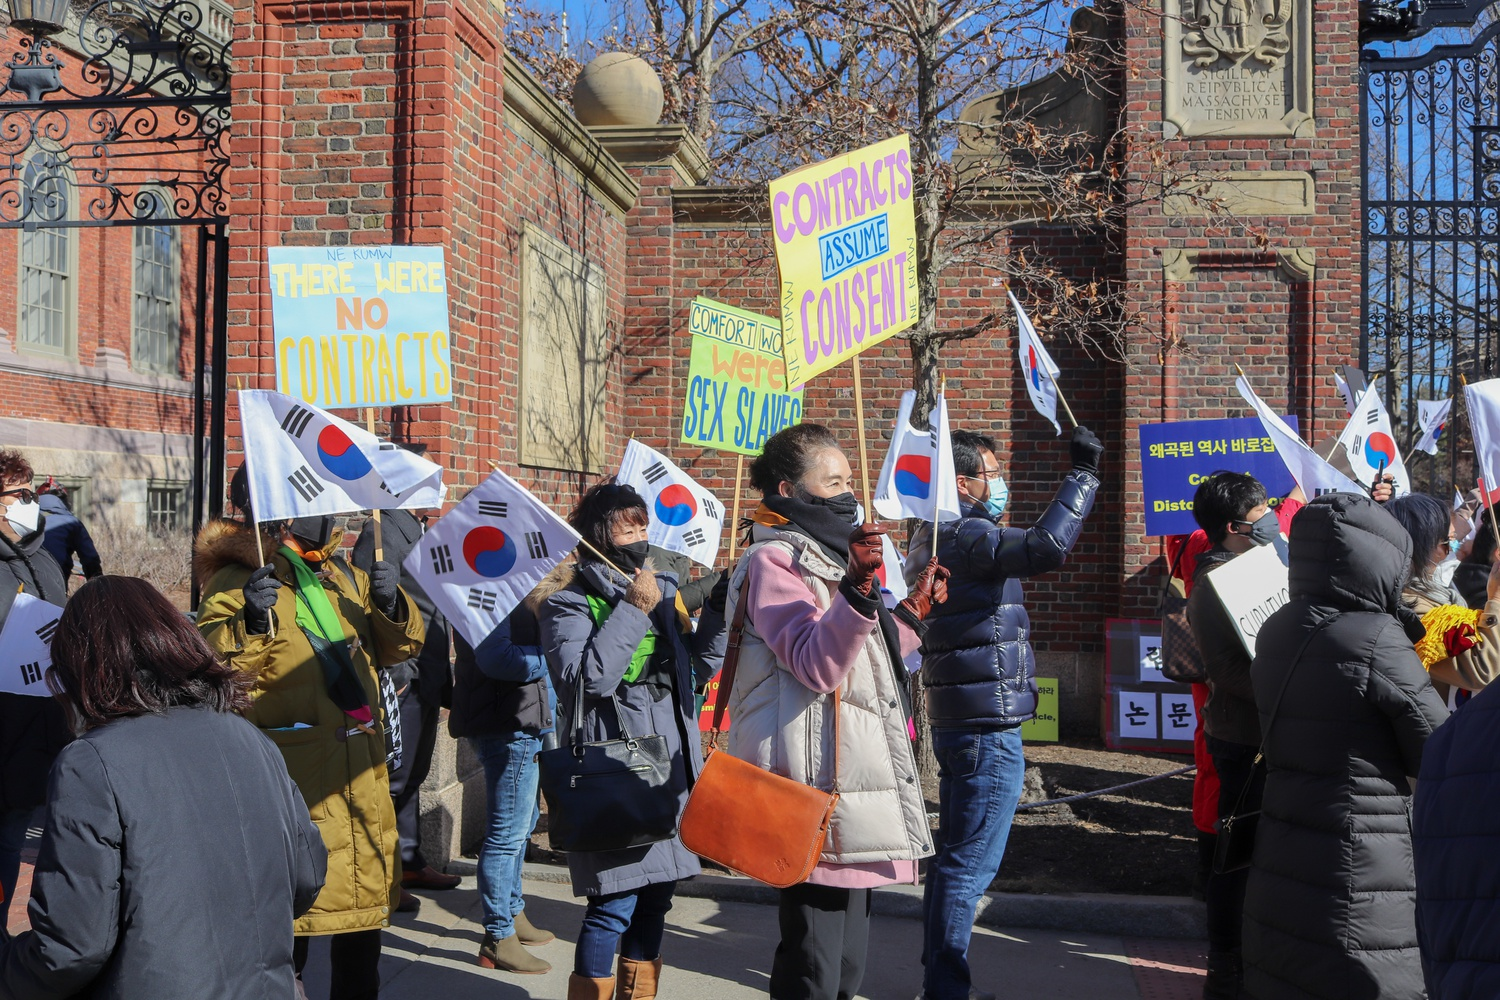 Dozens of demonstrators gathered outside Johnston Gate on March 6 in a protest organized by the Korean American Society of Massachusetts against Harvard Law professor J. Mark Ramseyer and his recent controversial paper on comfort women.